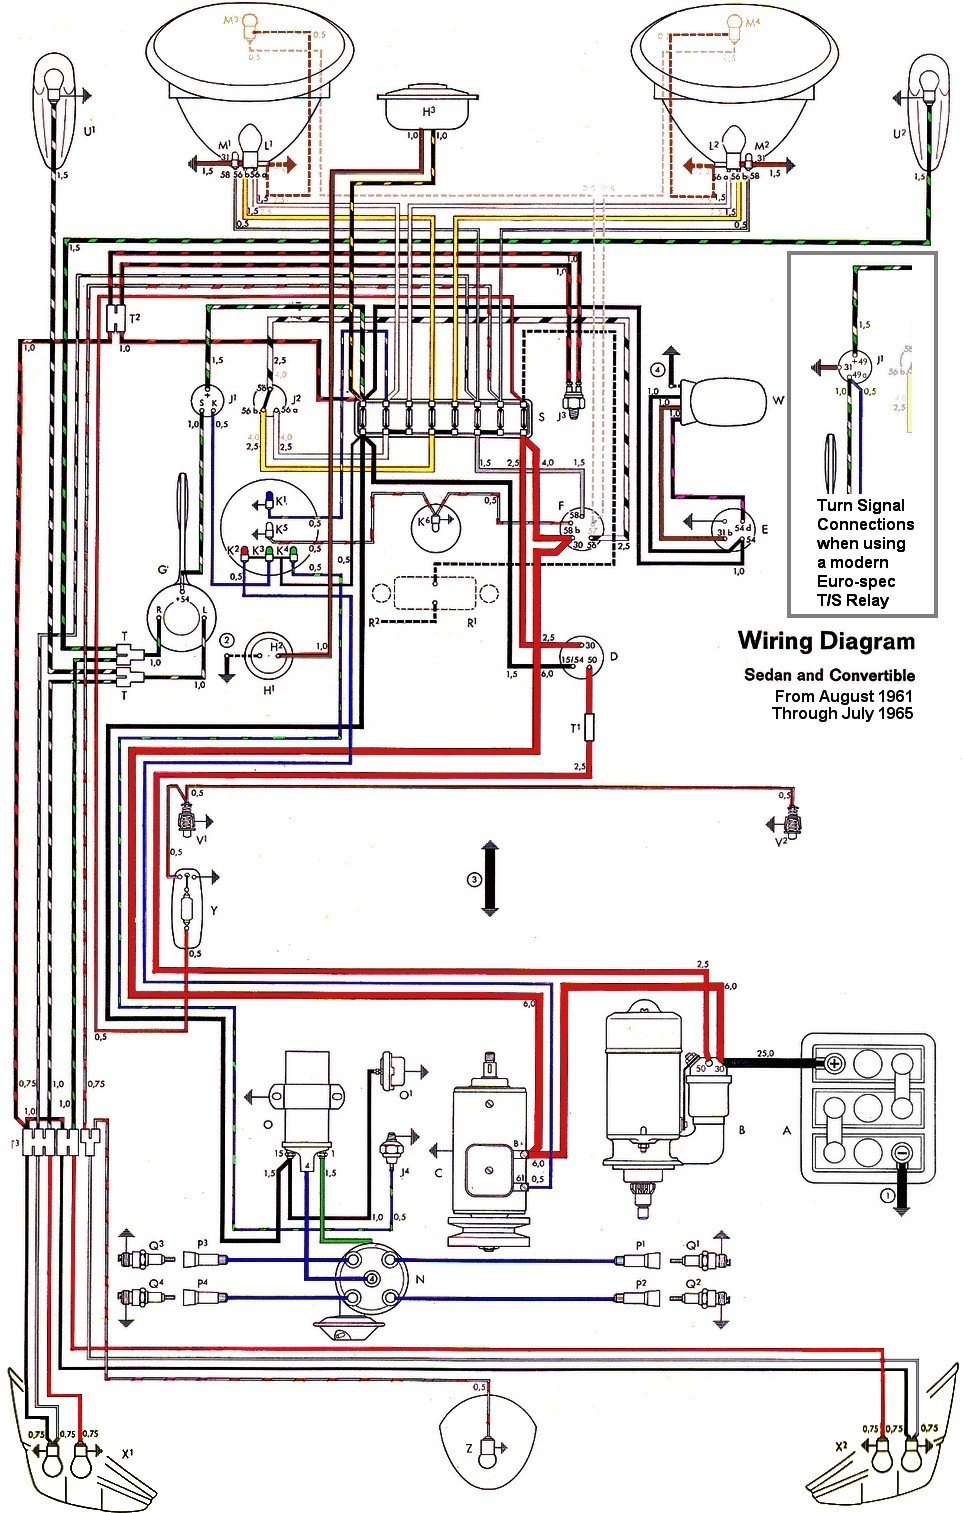 70 vw wiring diagram wiring data diagram rh 9 meditativ wandern de